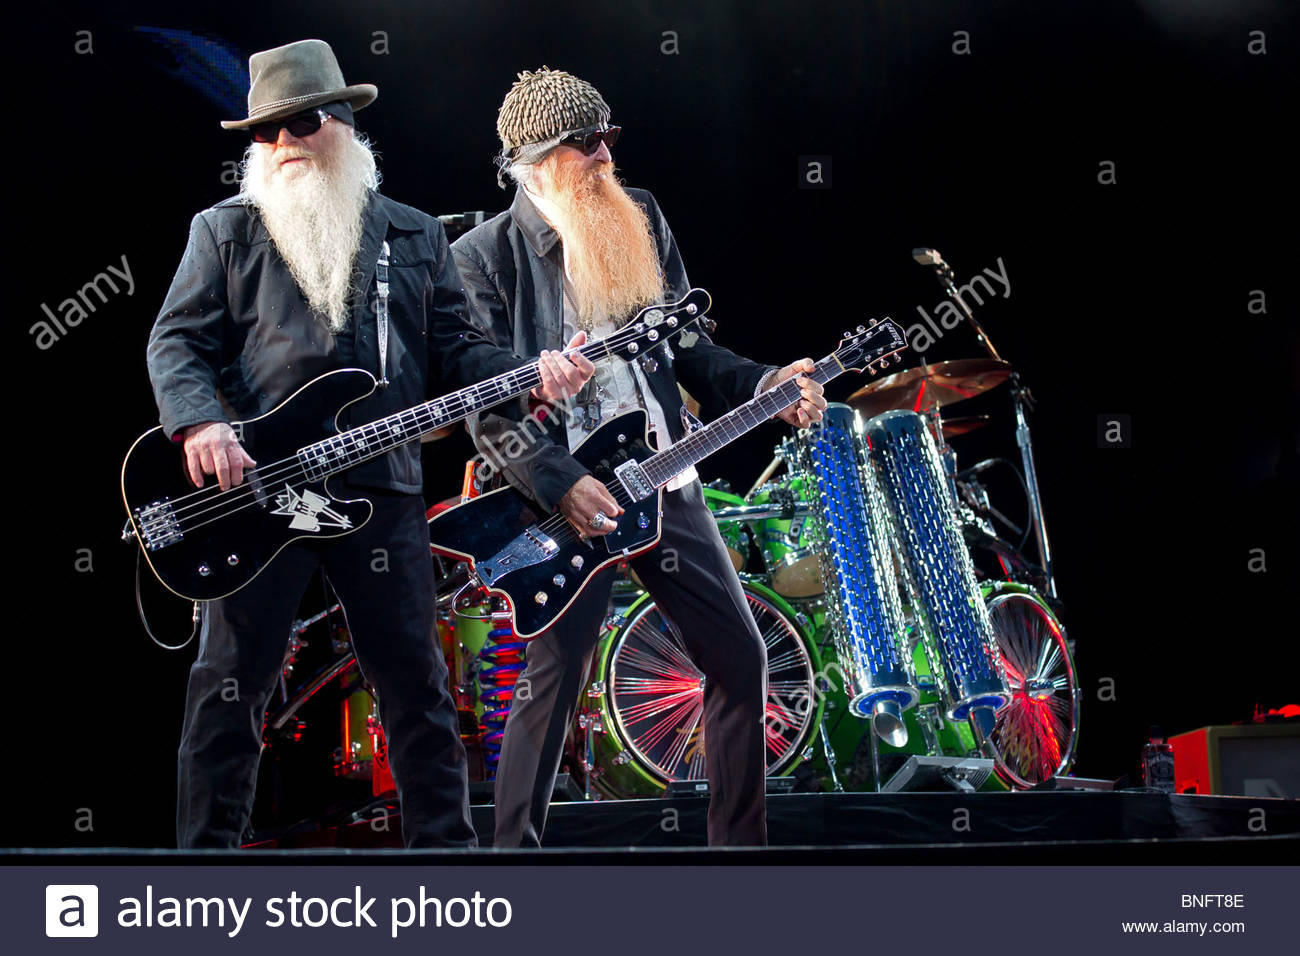 Texas blues rock band ZZ TOP performing live - Stock Image